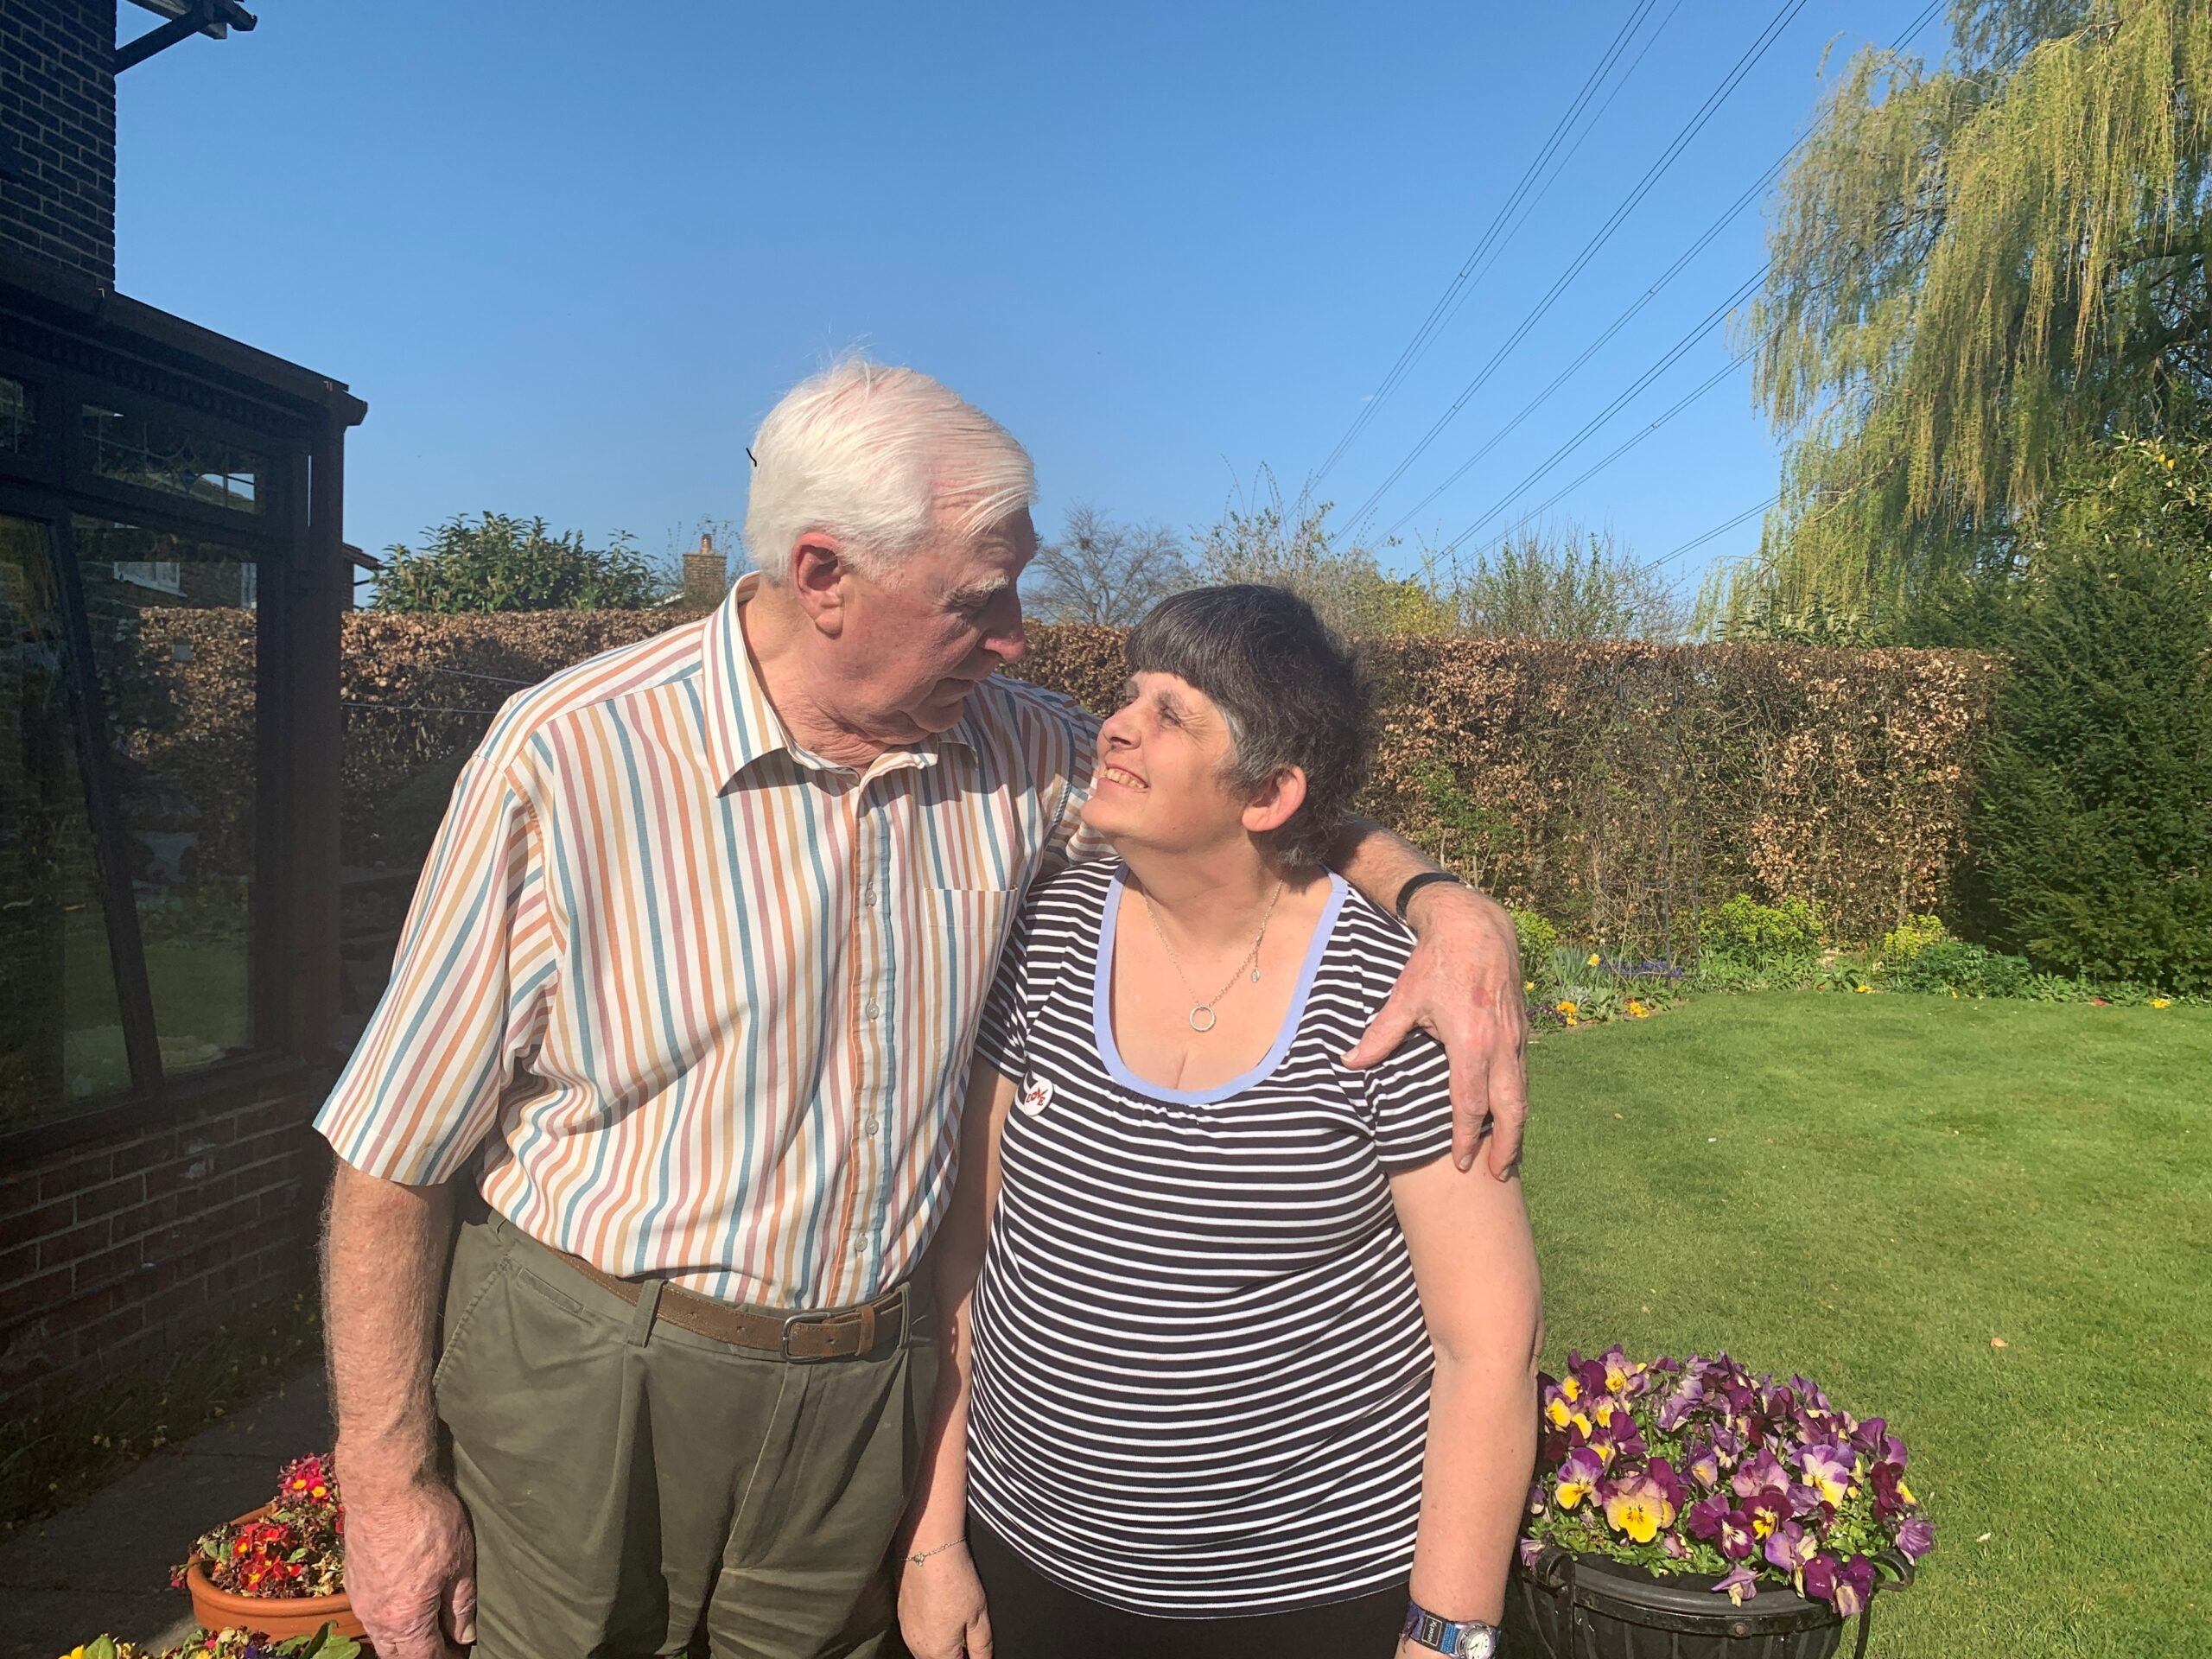 Photograph of Peter and Sarah in the garden smiling at each other